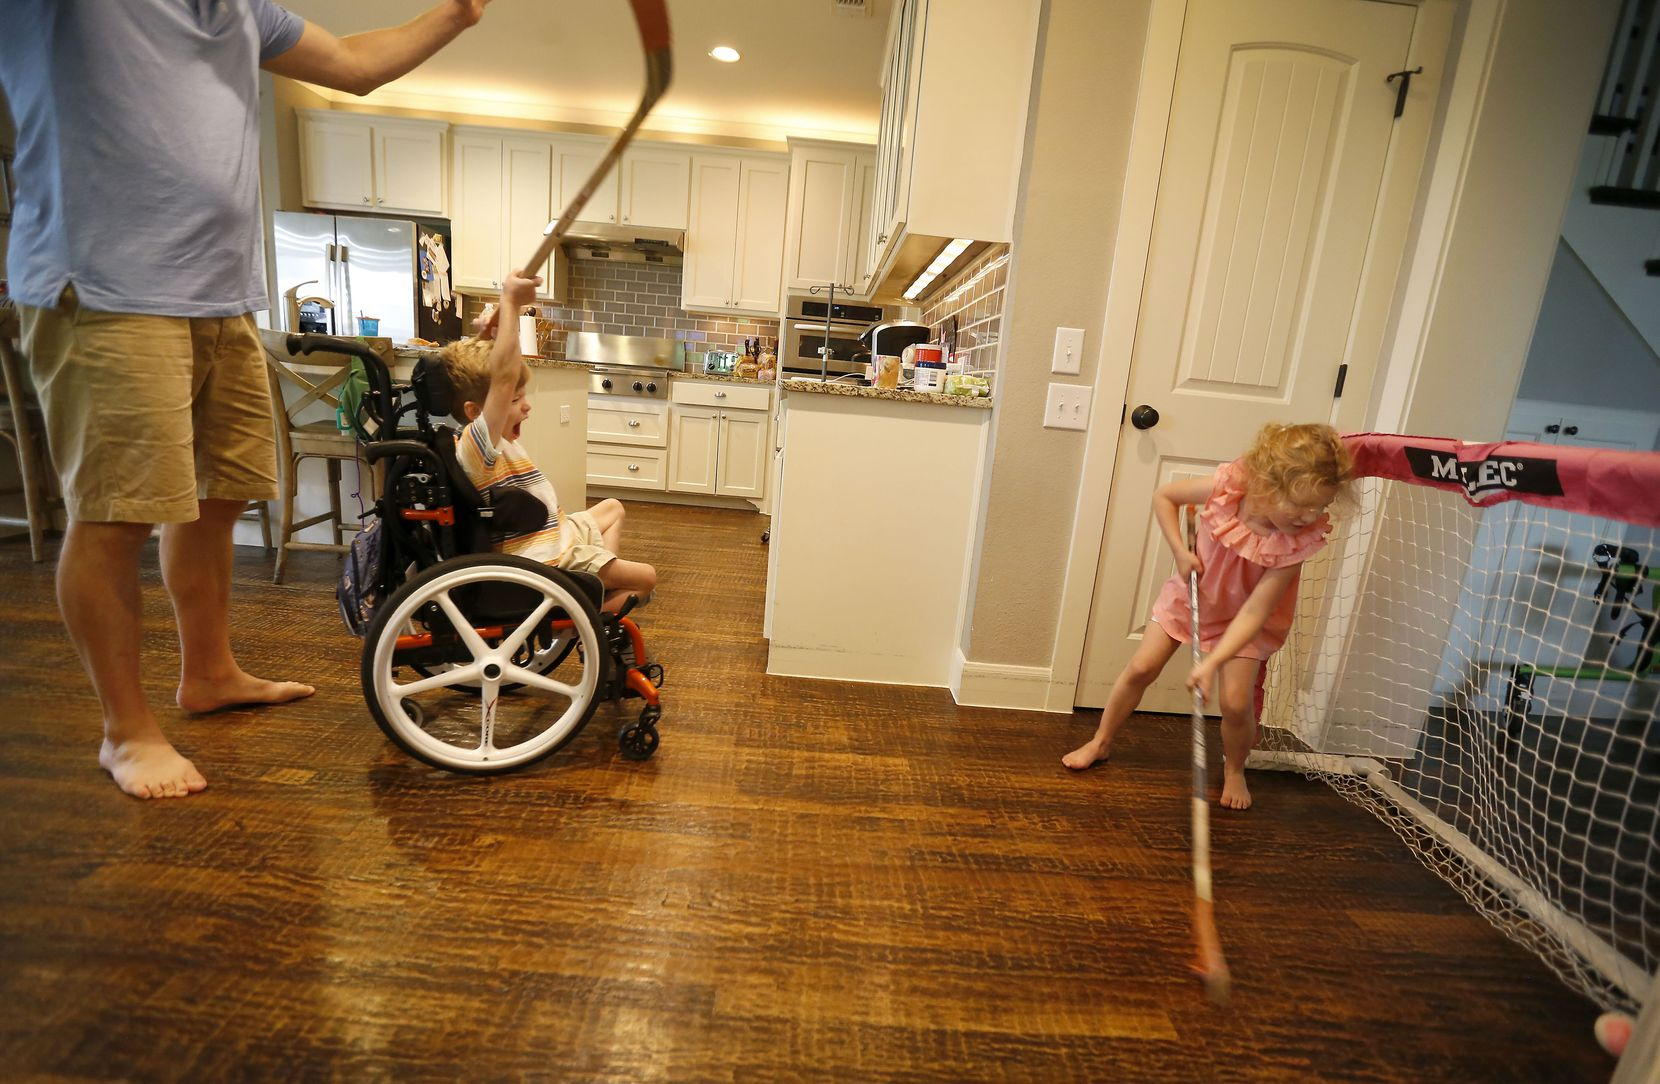 Will celebrates after he scores a goal while playing hockey with his sister, Lauren, in the living room at their home in McKinney, Texas, Wednesday, June 20, 2018.